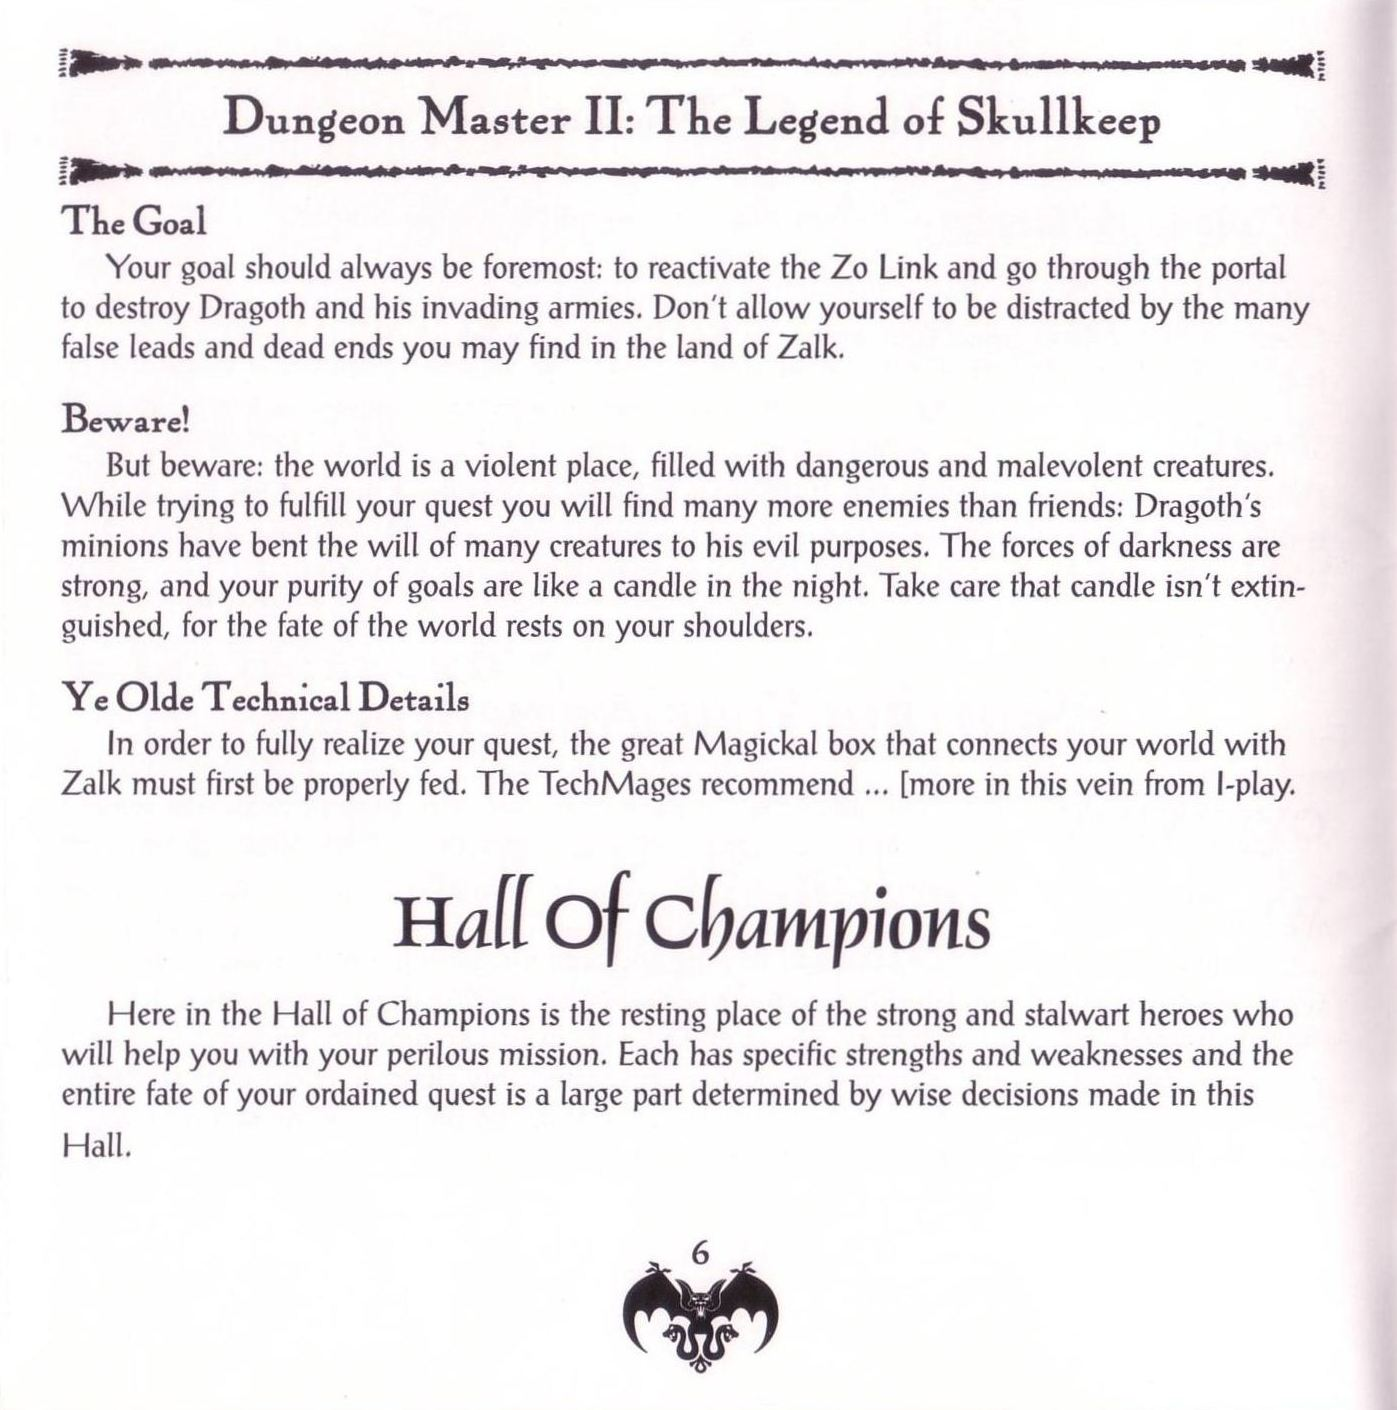 Game - Dungeon Master II - US - PC - Jewel Case - Booklet - Page 008 - Scan